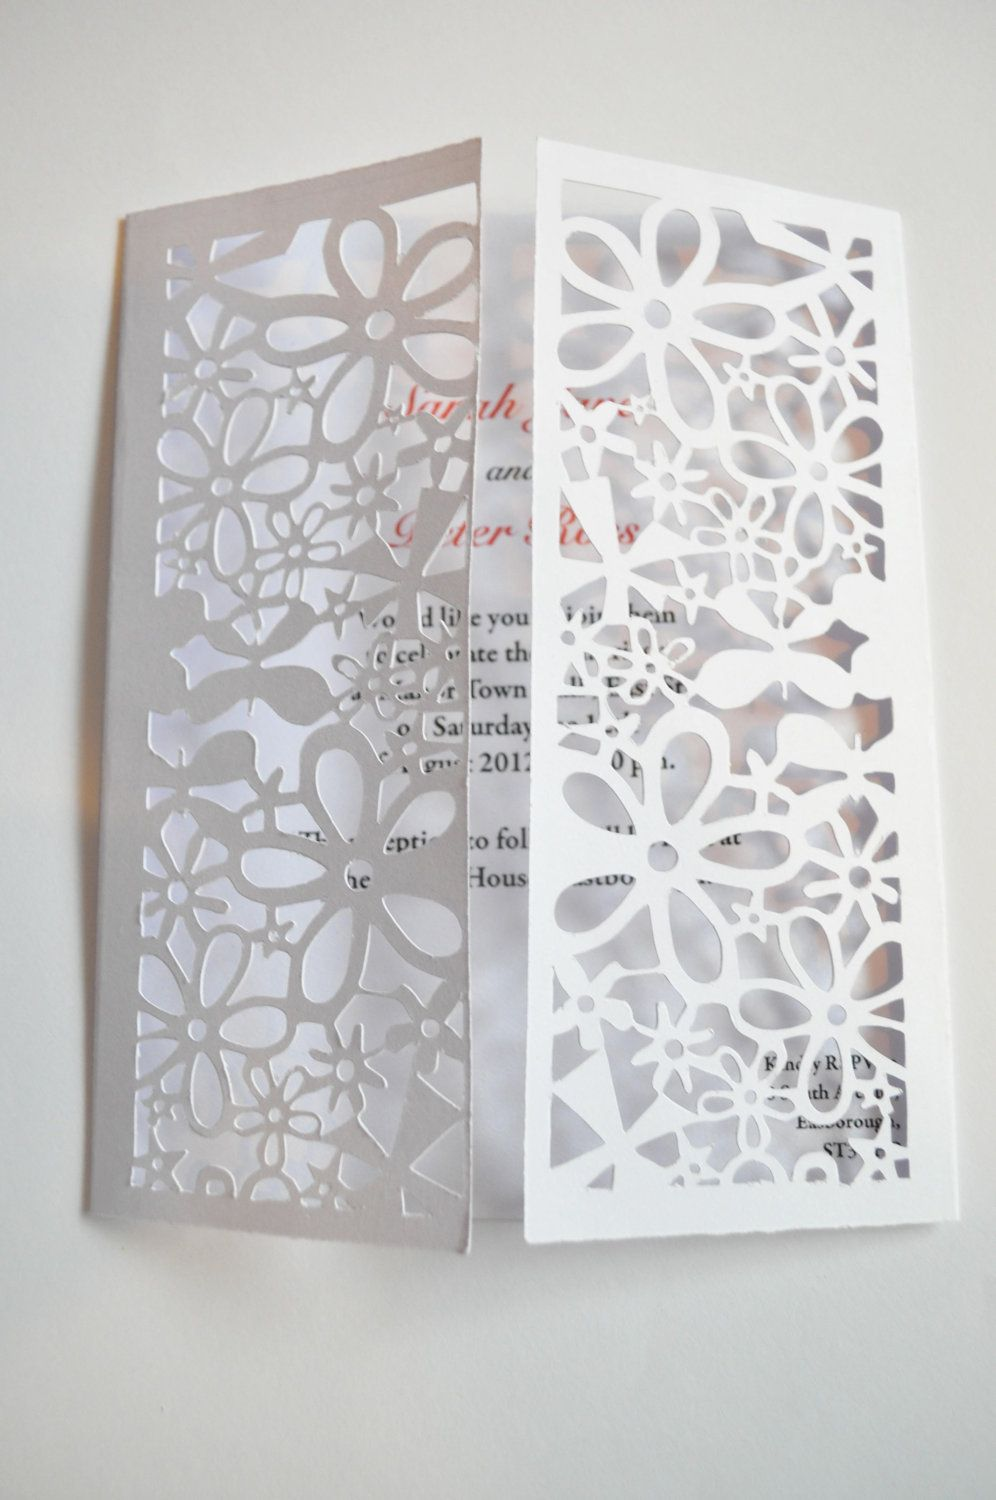 Deluxe Flower Butterfly Gatefold Laser Cut Wedding Invitation Pack Of 25 £4900 Via Etsy: Pea Wedding Invitations Cut Out At Websimilar.org